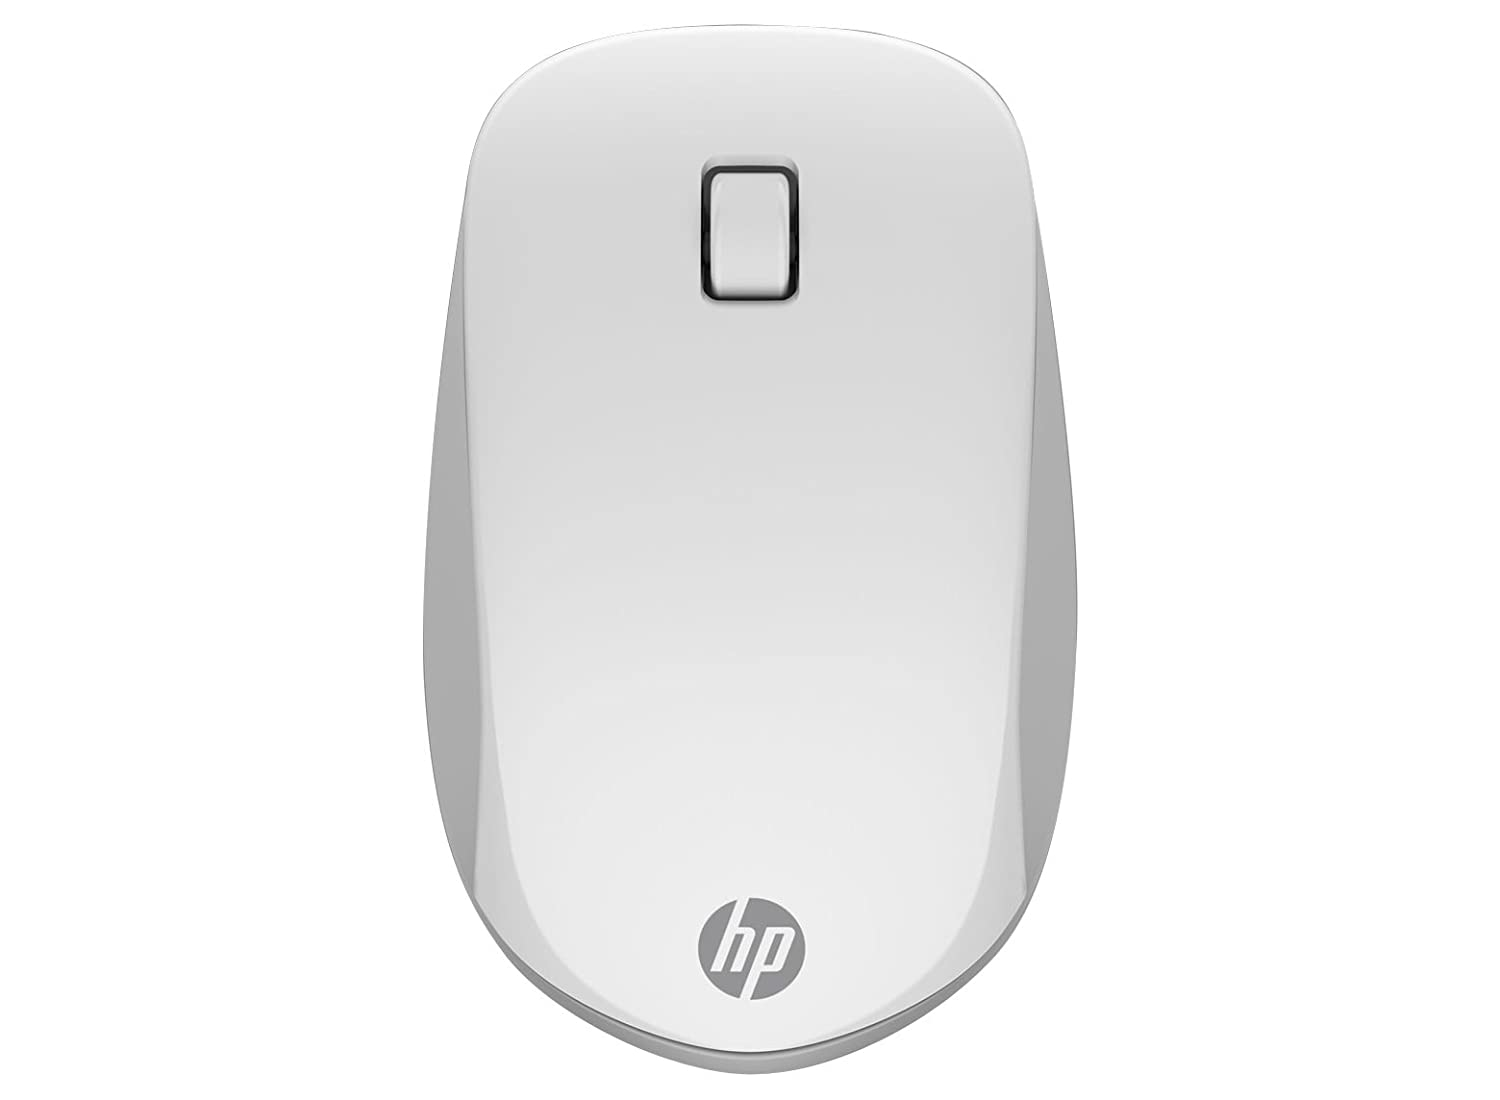 Hewlett Packard Enterprise Wireless Mouse Z5000   B01N9JVOG6, ダテマチ 3bdb5607